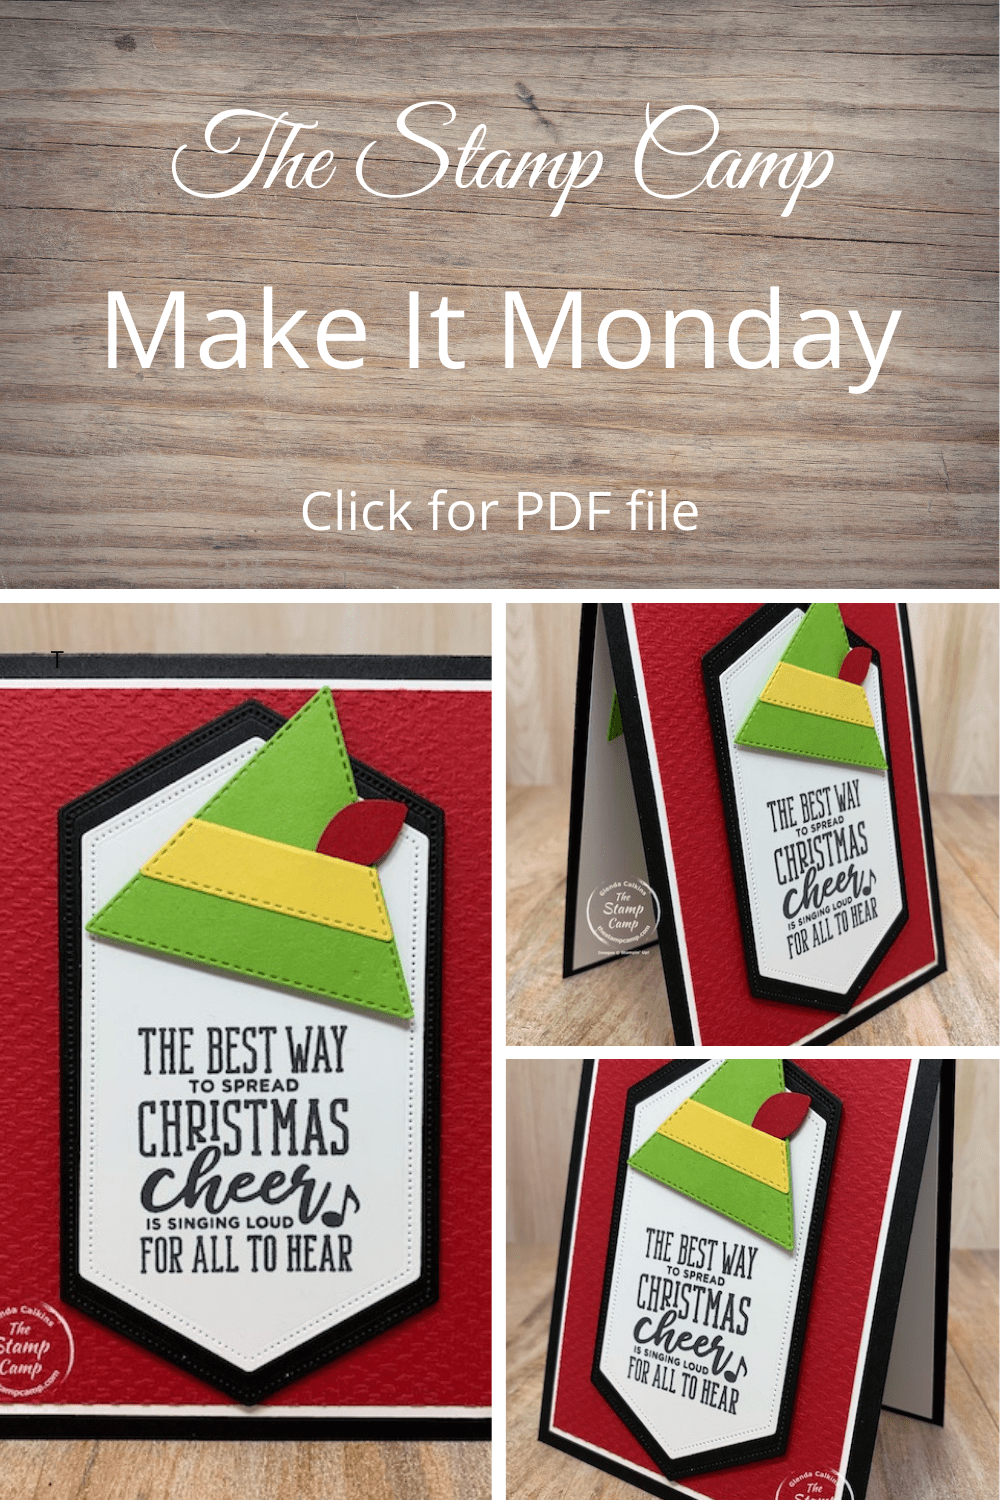 It is Make It Monday and this week it is creating an Elf Hat using the Stitched Triangle Dies from Stampin' Up! The sentiment is from the Christmas Means More stamp set which reminds me of the Christmas Movie Elf with Will Ferrell. #stampinup #thestampcamp #dies